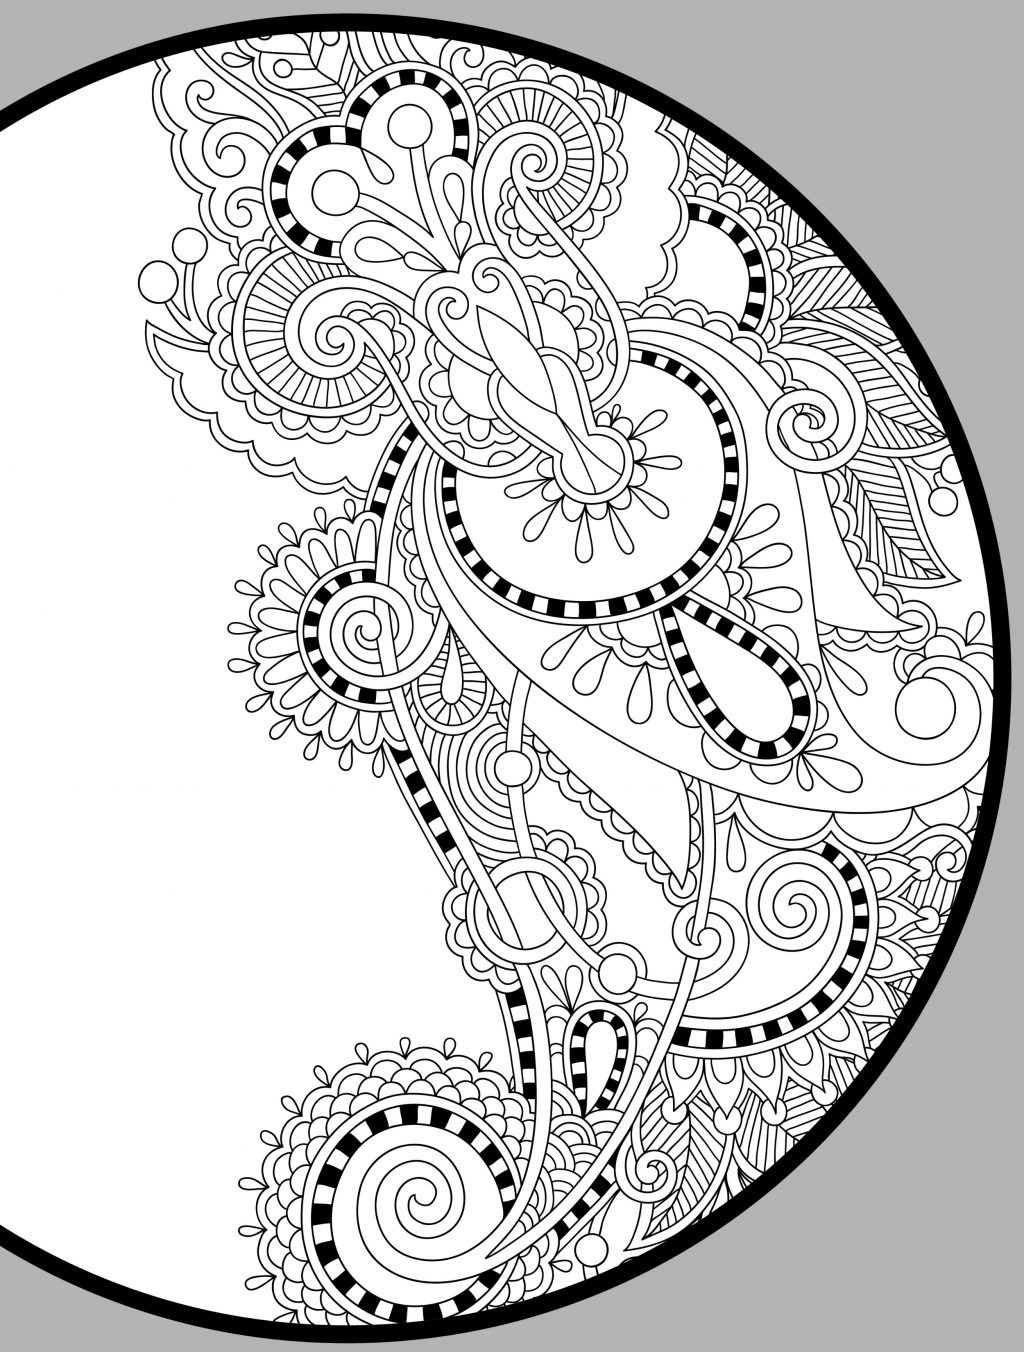 Coloring Page ~ Free Printable Holiday Adult Coloring Pages Page - Free Printable Coloring Pages For Adults Pdf